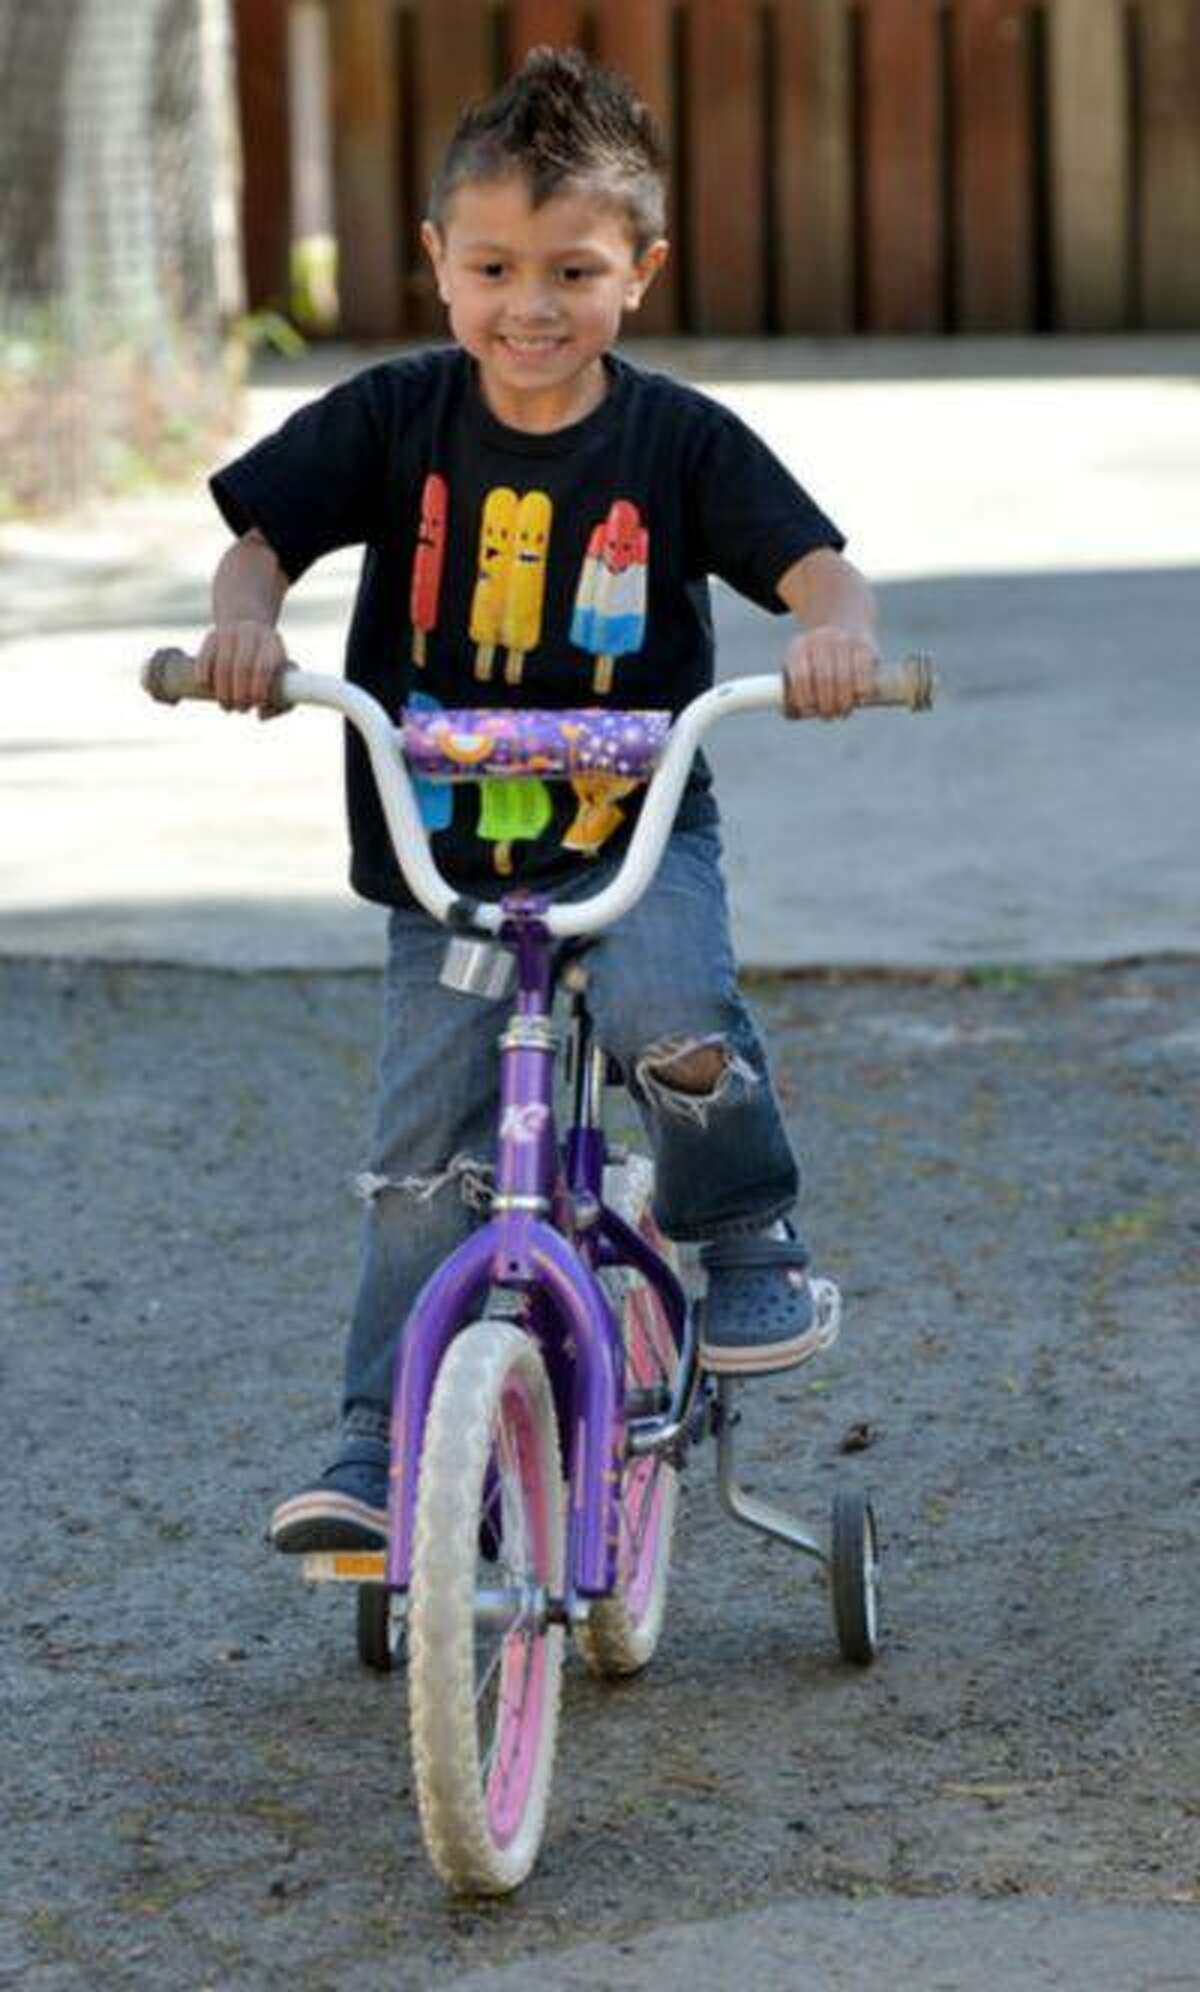 Julian Meija-Blagovic, 4, of Martinez, rides a pink and white bike that his parents bought for him at a garage sale in Martinez, Calif., on Saturday March 23, 2013. His parents, Jorge Meija and Lisa Blagovic, are trying to raise their kids with respect and balance of gender.